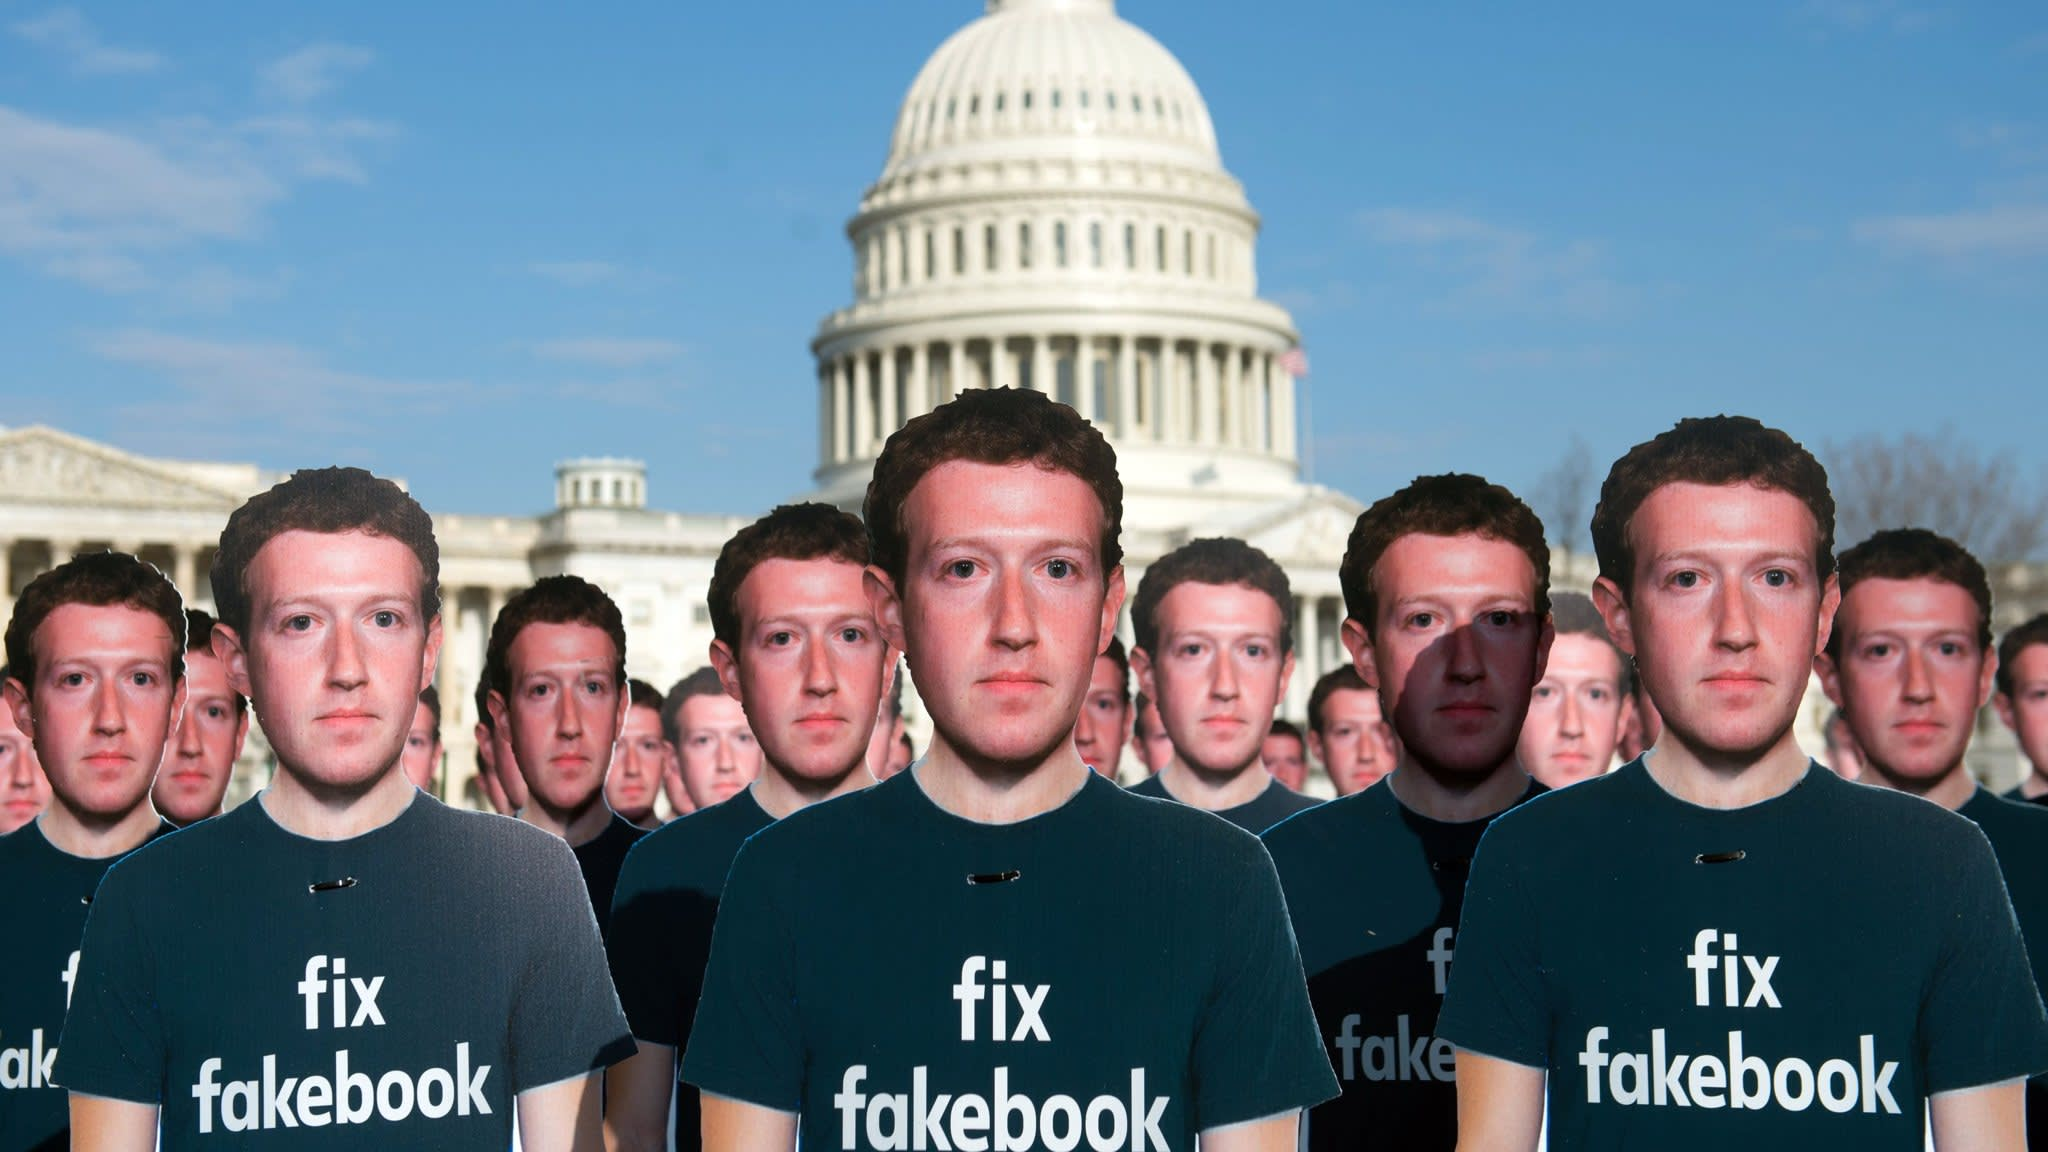 Zuckerberg testifies: Live